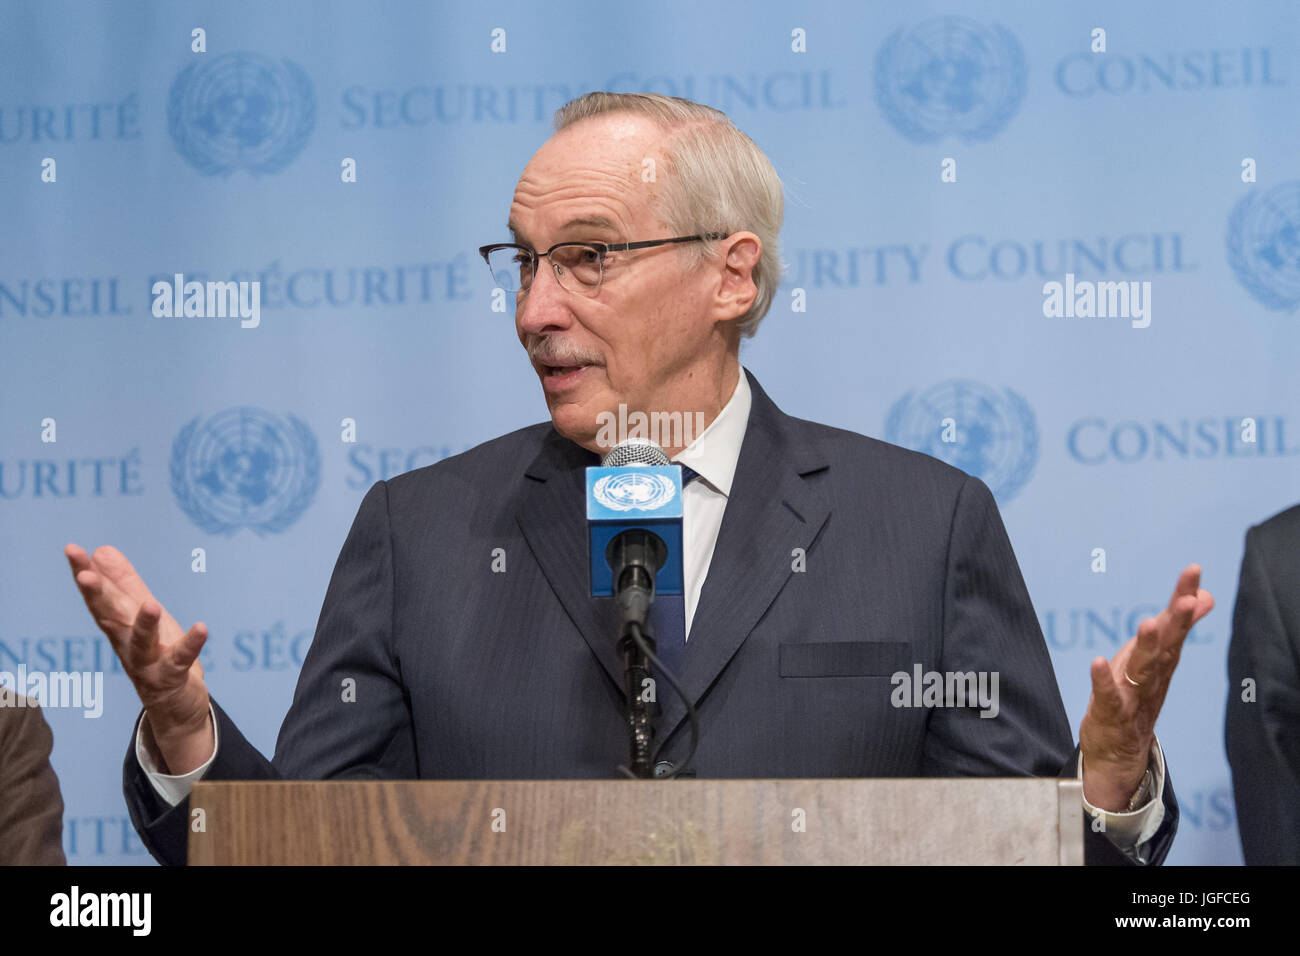 New York United States 06th July 2017 Following Security Council Meccanism Long Syiria Consultations On Syrias Alleged Use Of Sarin Gas Edmond Mulet Head The Joint Investigative Mechanism Jim